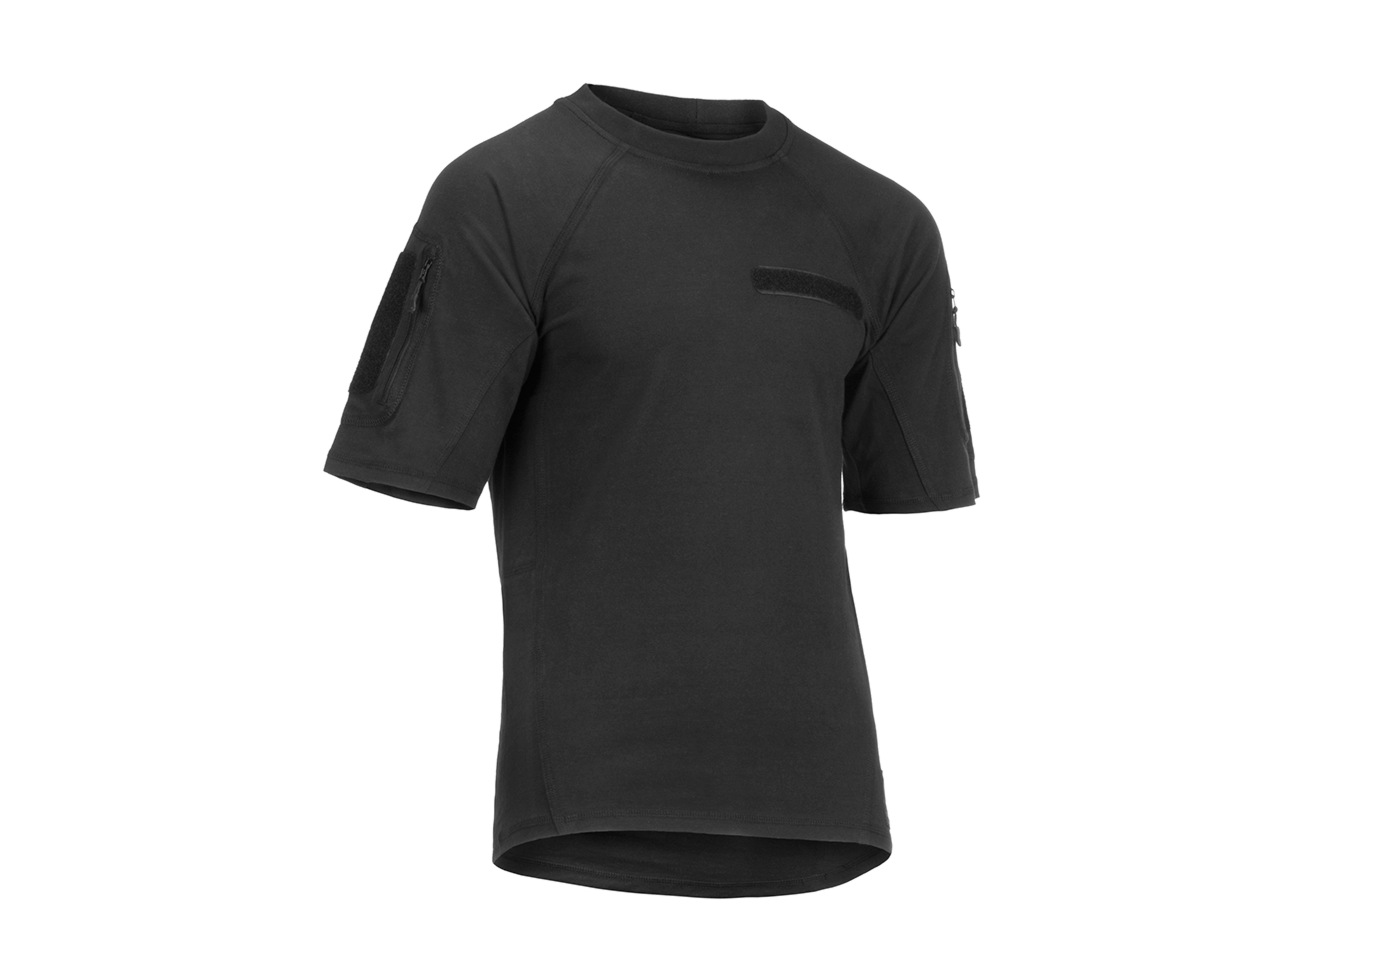 Clawgear MK.II INSTRUCTOR Shirt, Black